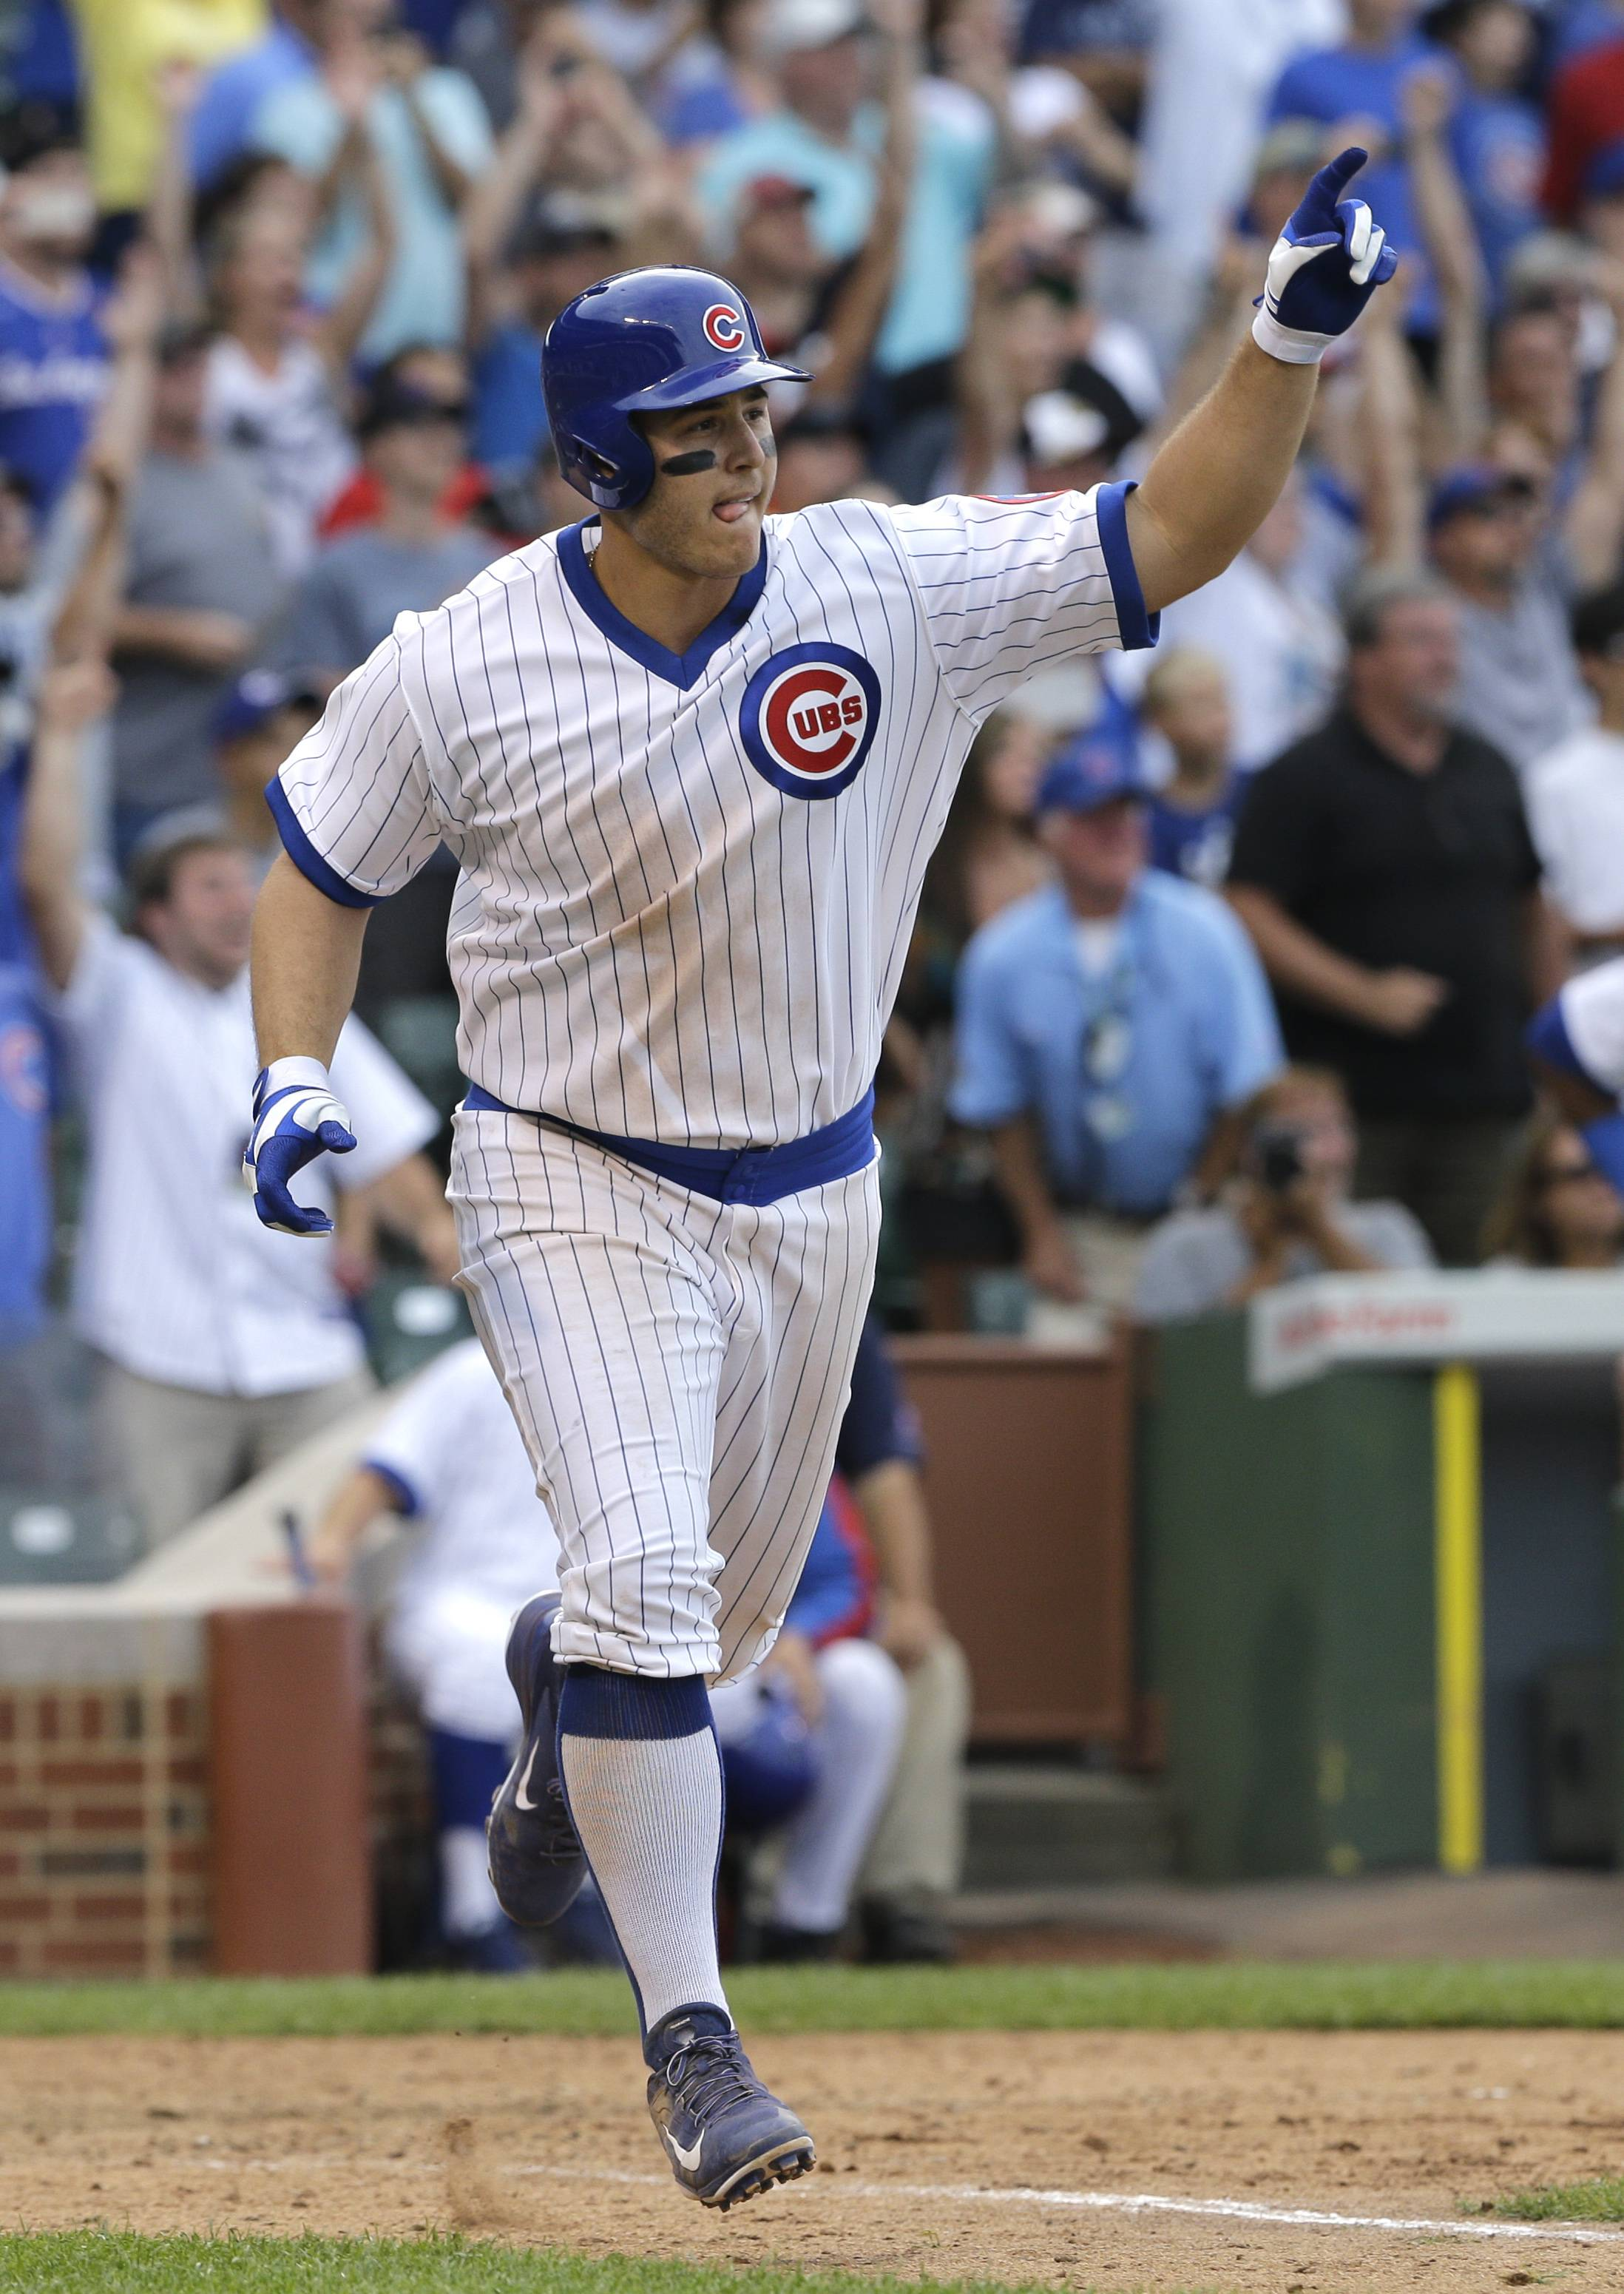 Anthony Rizzo celebrates after hitting a game-winning single for the Cubs during the 12th inning Sunday against Tampa Bay Rays at Wrigley Field. The Cubs won 3-2.